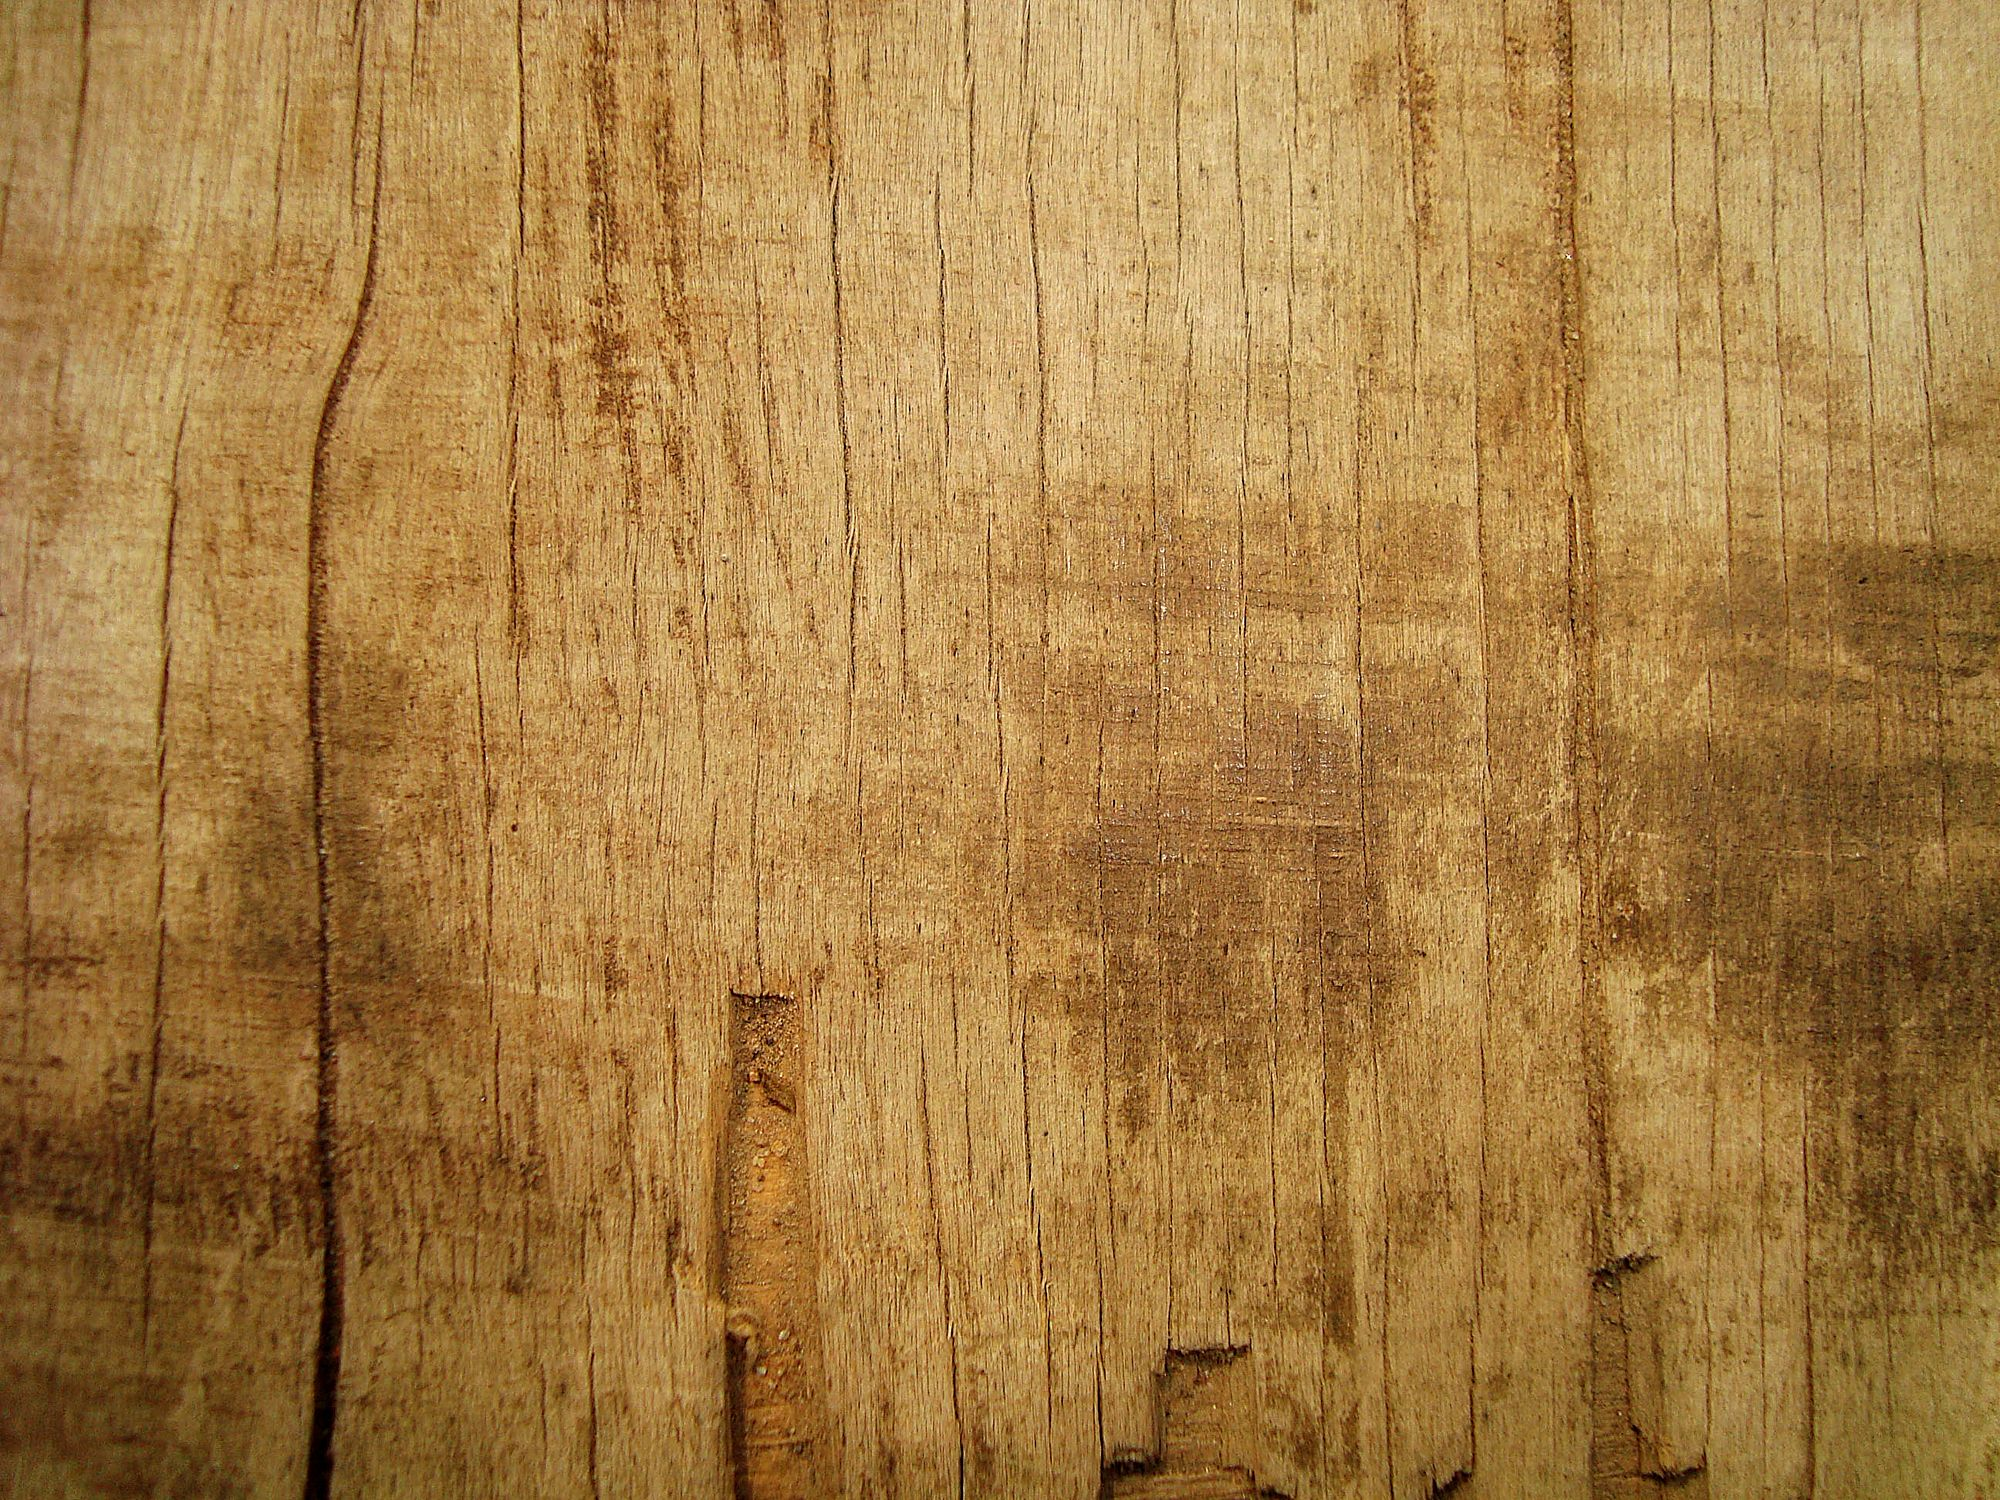 wood texture - Free Large Images | igo2create Textures in ...